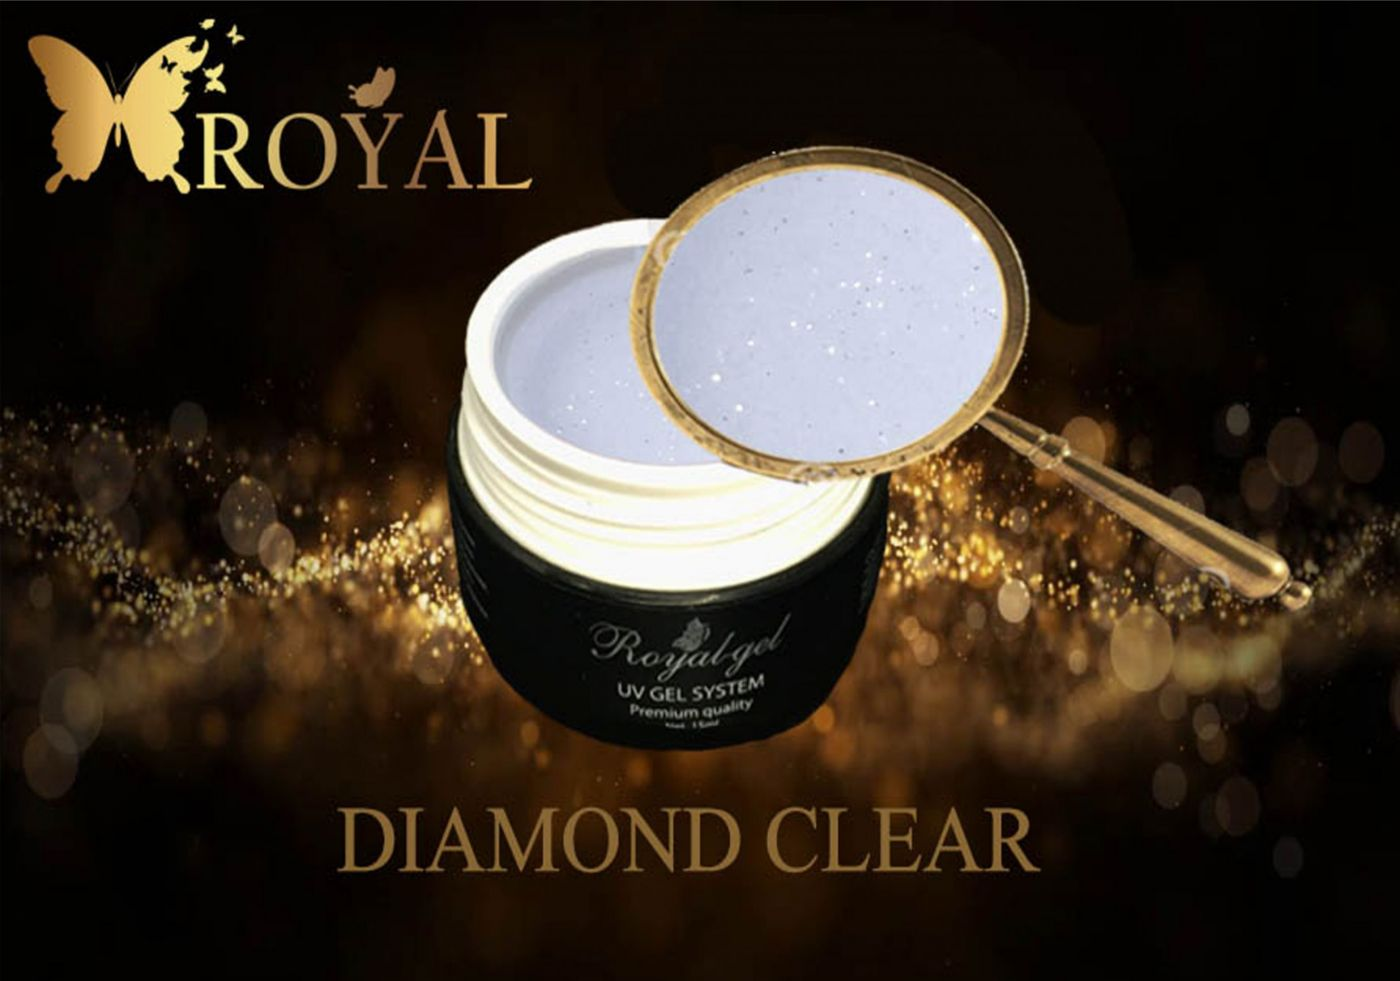 DIAMOND CLEAR ROYAL GEL